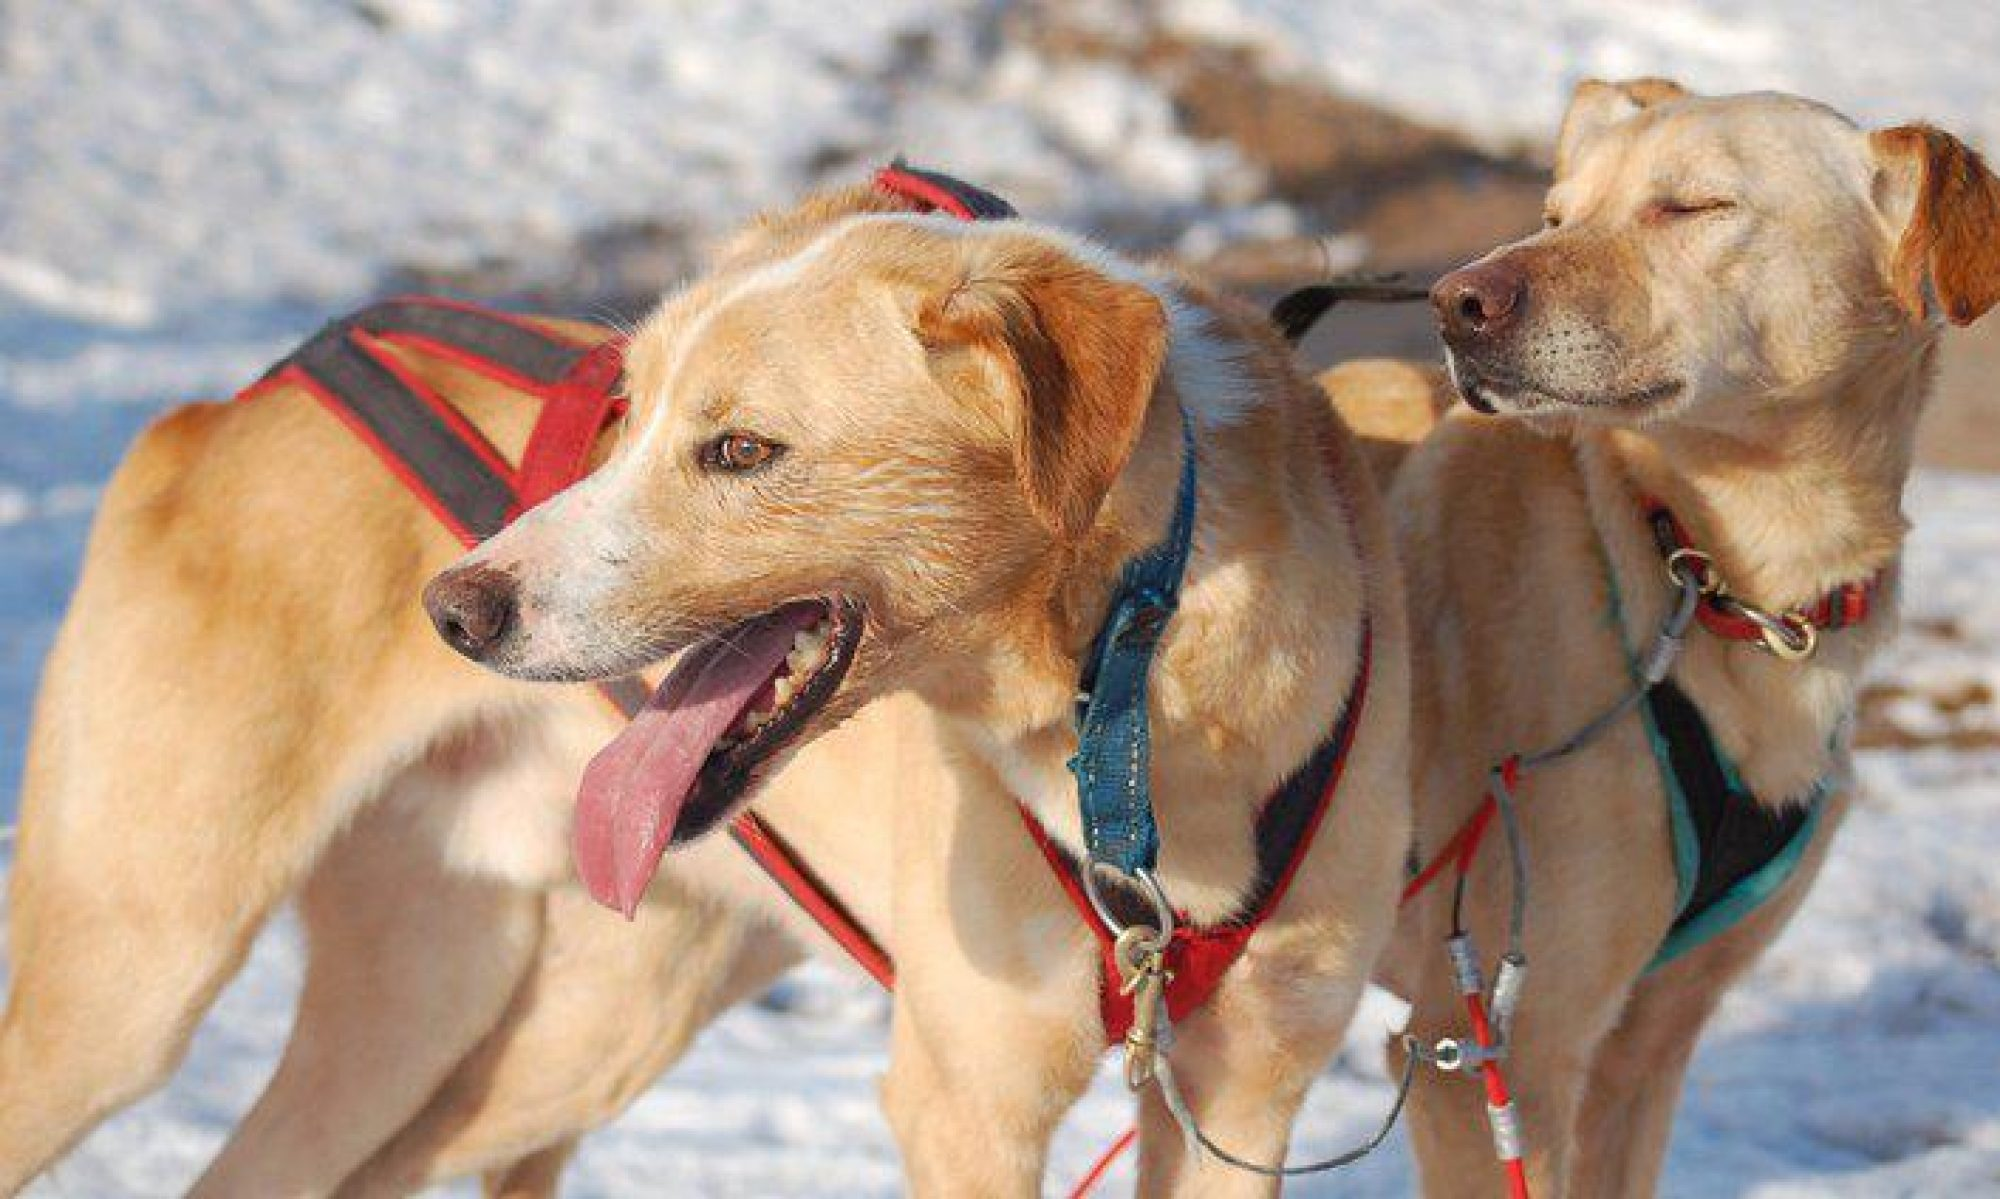 Tom's sleddogsafaries